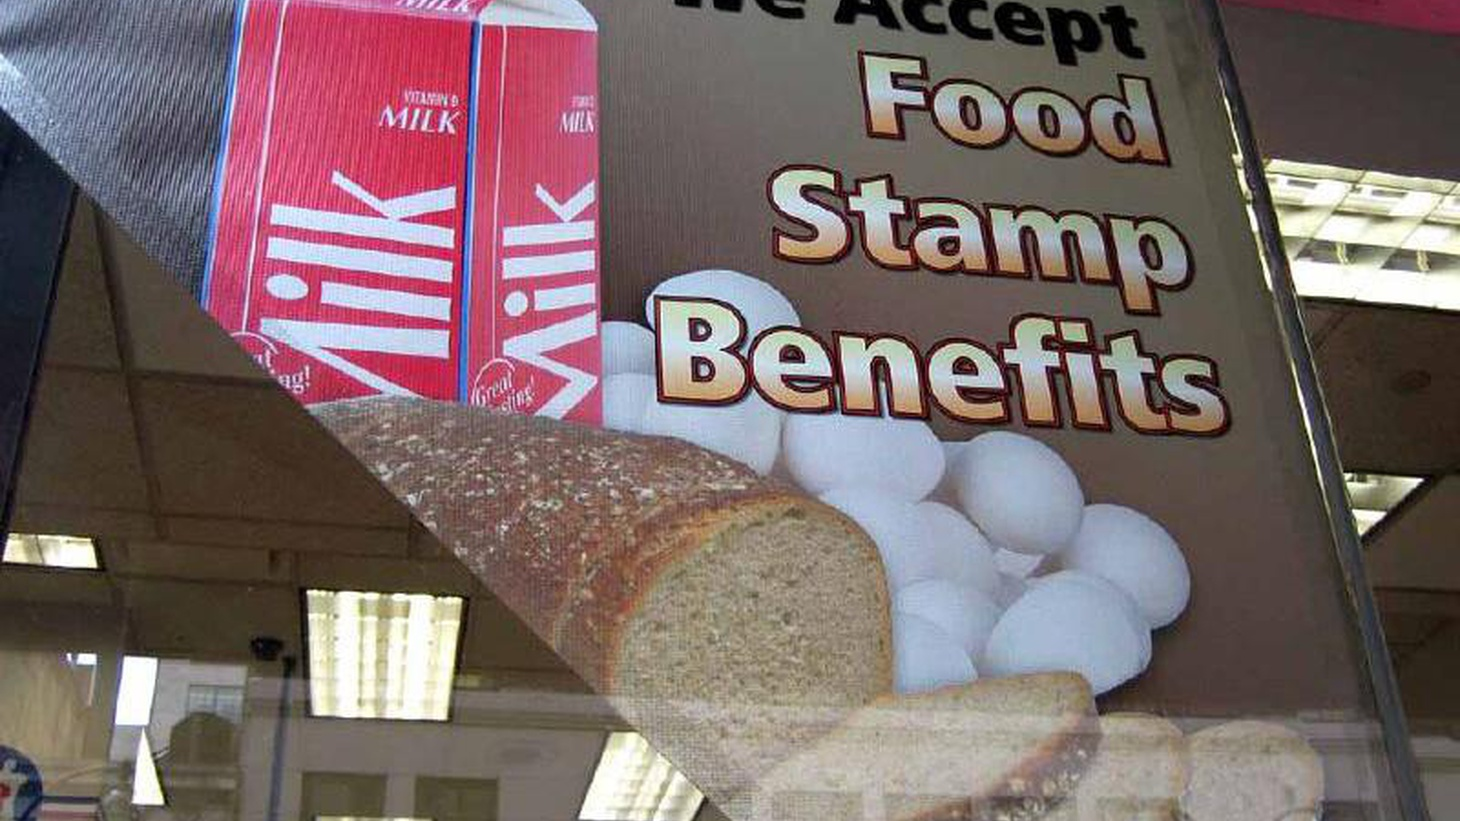 Friday's $5 billion cut in the Food Stamp program raises questions. Can a family of 4 eat on $632 a month? Why are 48 million people on Food Stamps in the first place?